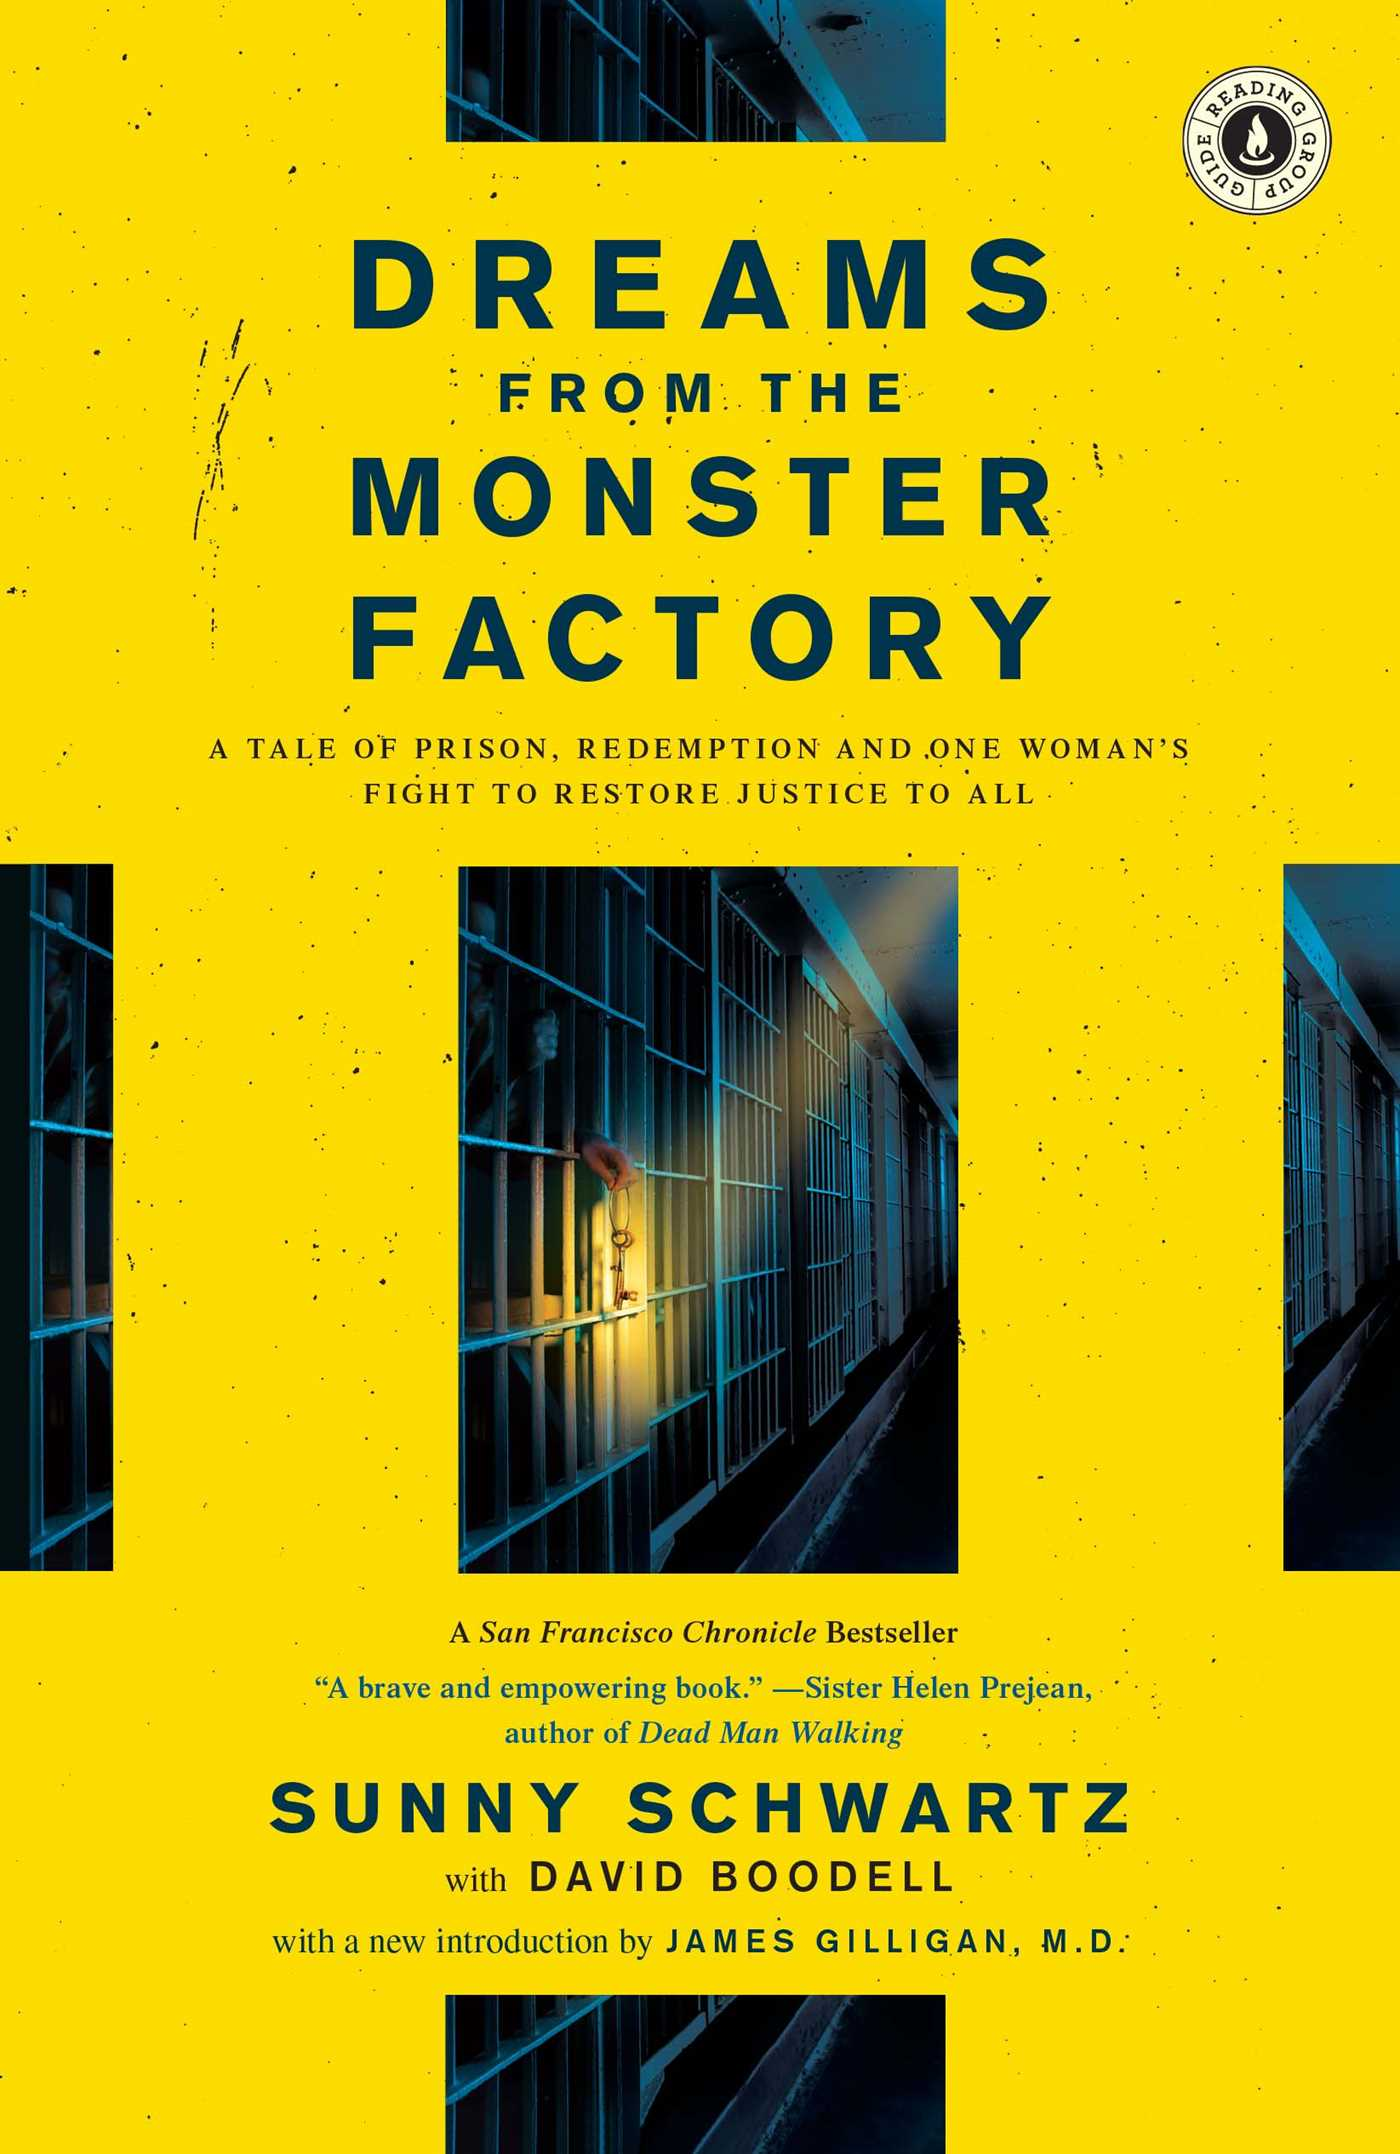 Dreams-from-the-monster-factory-9781416569824_hr